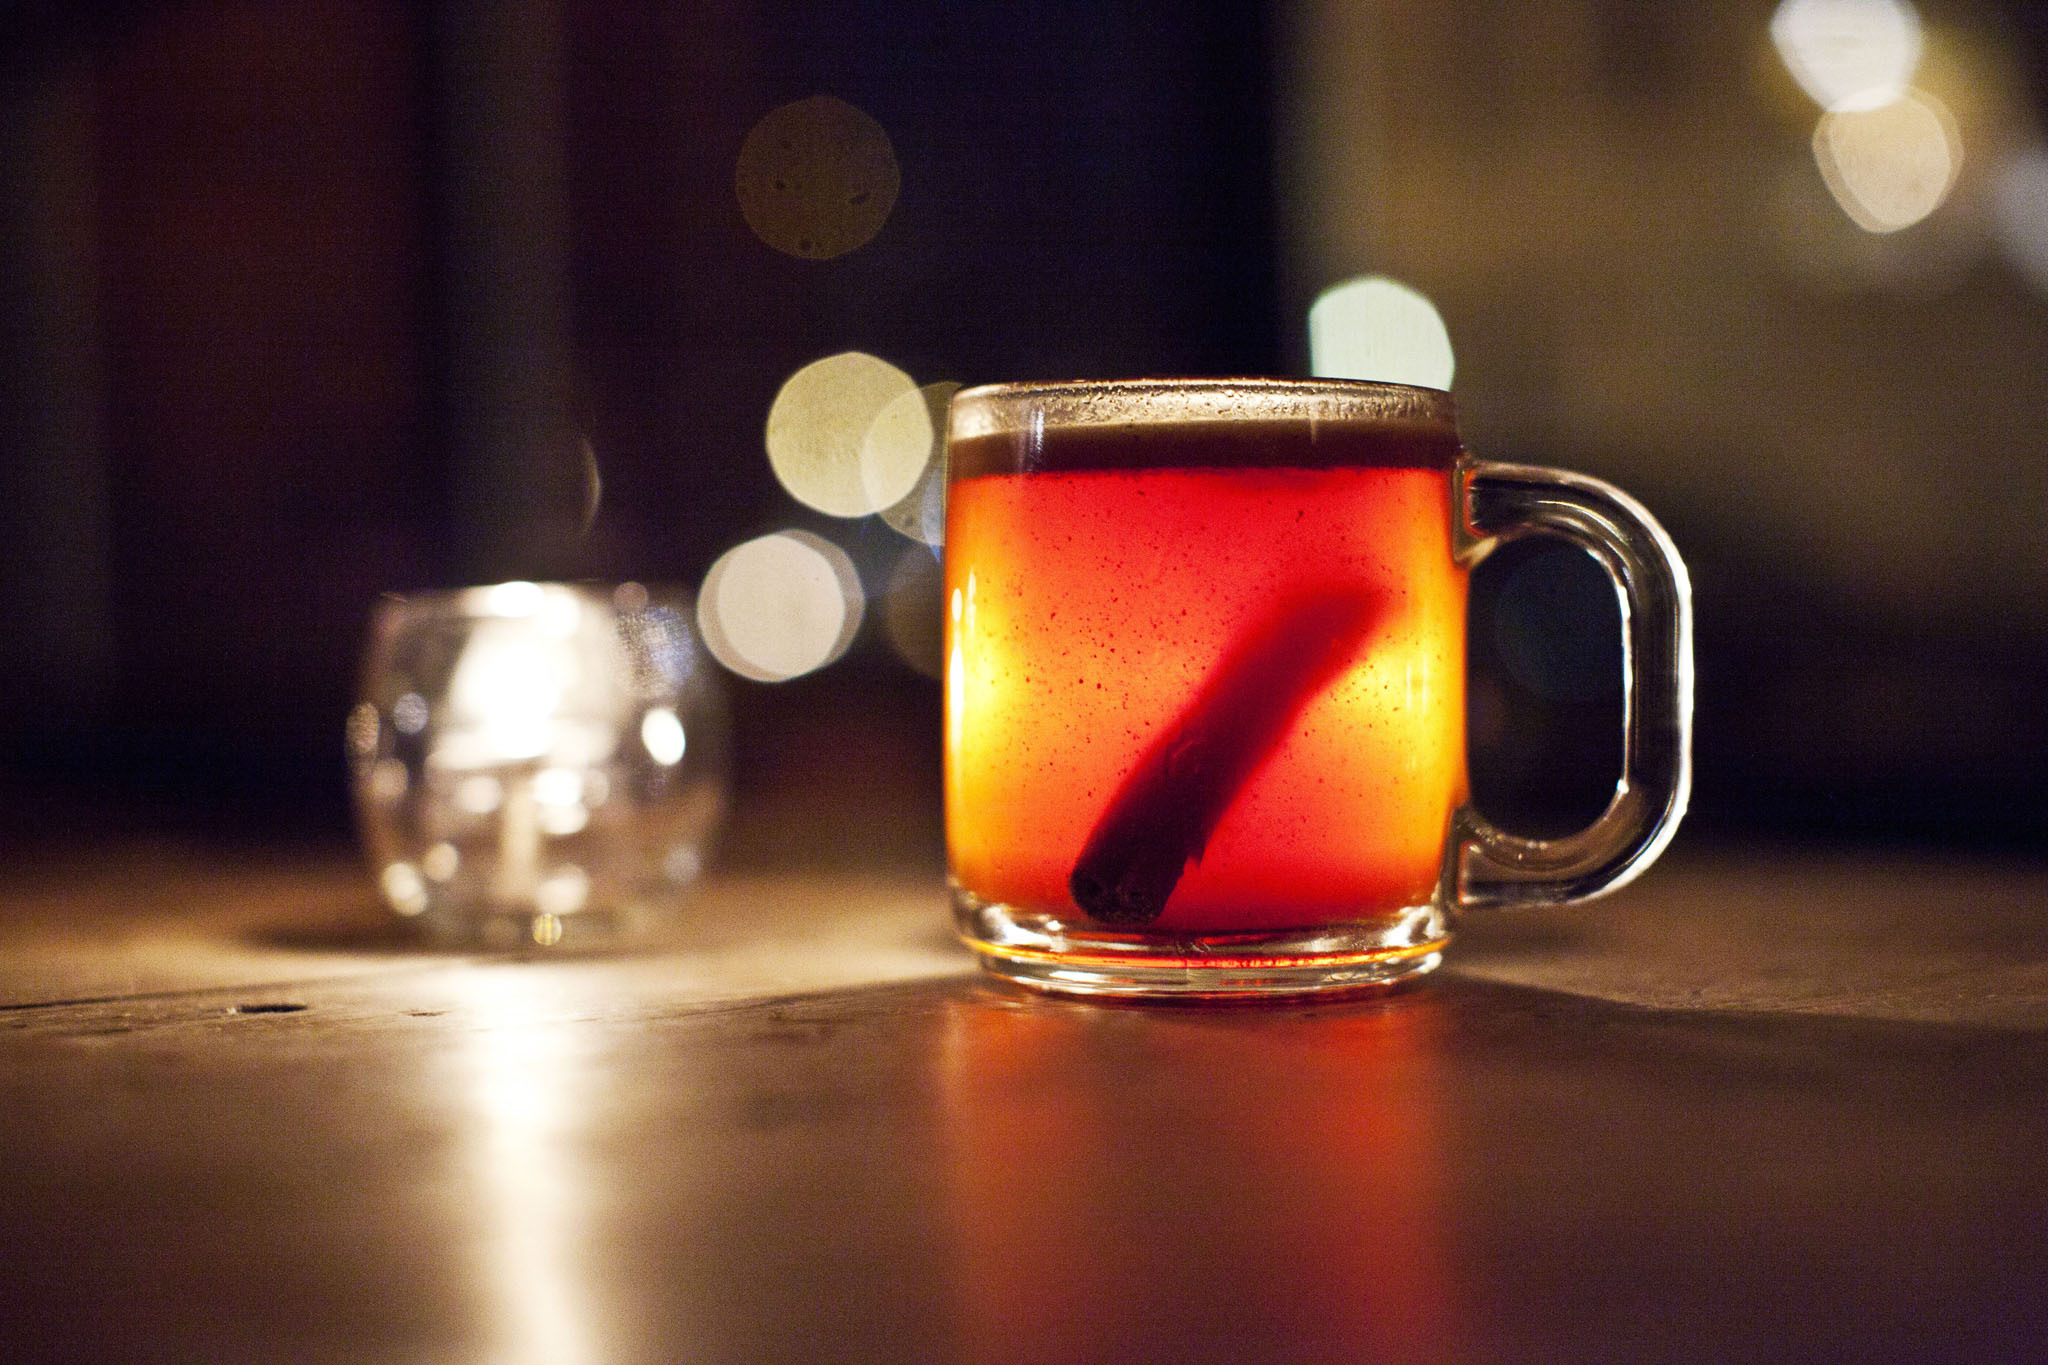 """<p><strong>The Rough Trade at <a href=""""http://www.timeout.com/newyork/bars/dram"""">Dram</a></strong><br />Owner Tom Chadwick adds an exotic edge to the classic hot buttered rum. He stirs a heaping spoonful of butter, cut with a Chinese five-spice mix, into a fearsomely potent pairing of rums: Coruba Jamaican and Plantation Trinidad Overproof. A nip of hot water dilutes the gutsy cocktail, but a shower of bitters (Amargo Angostura Vallet, Jerry Thomas) keeps the holiday favorite strong through the finish. <em>177 South 4th St between Driggs Ave and Roebling St, Williamsburg, Brooklyn (718-486-3726, <a href=""""http://drambar.com"""" target=""""_blank"""">drambar.com</a>). $10.</em></p>"""